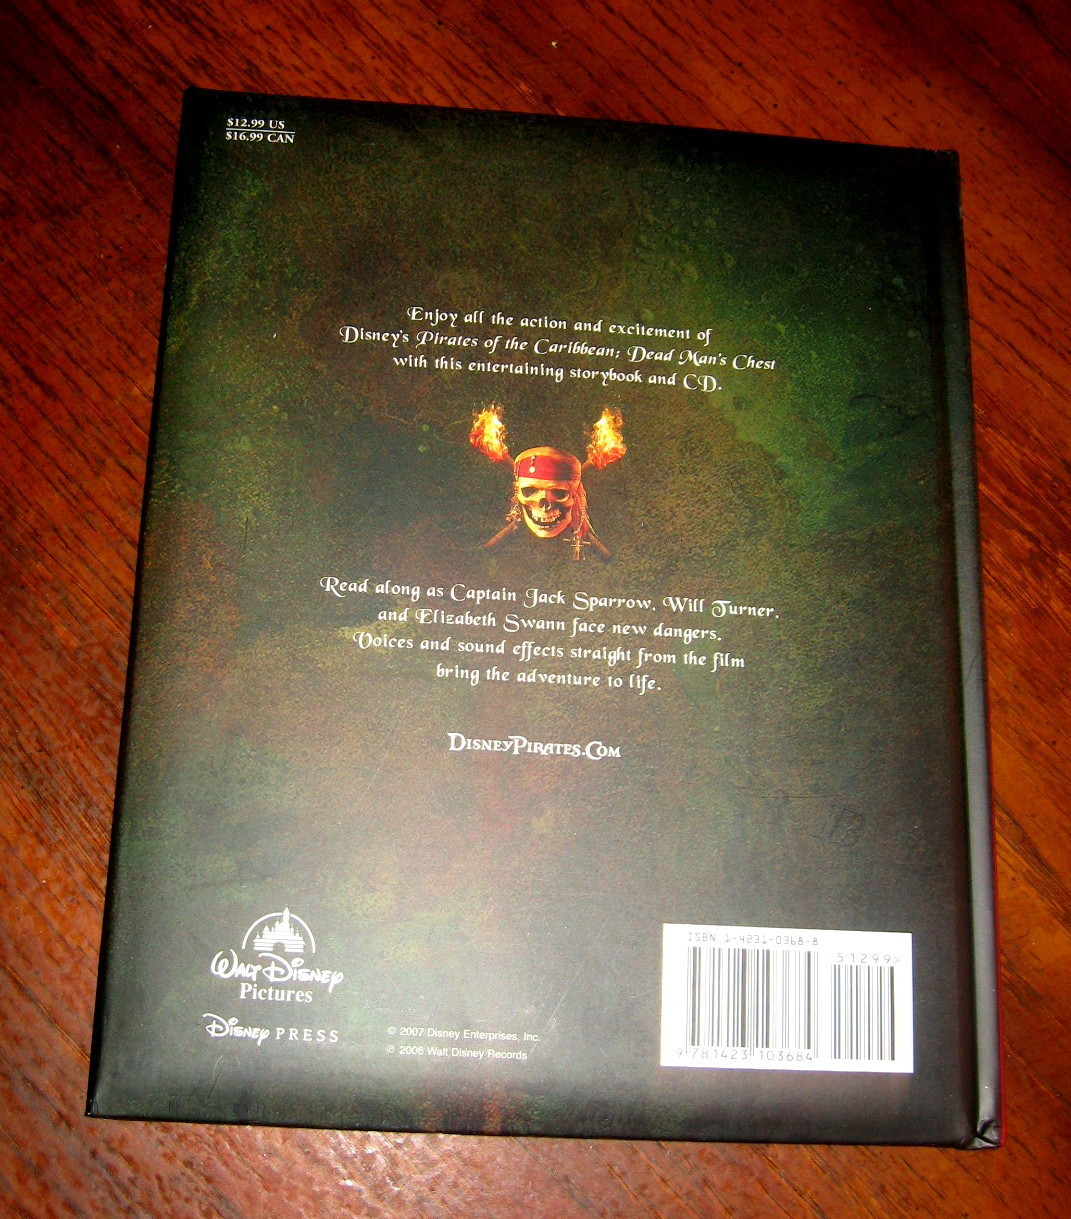 Disney Pirates of the Caribbean, Dead Man's Chest, Storybook & CD, sound effects